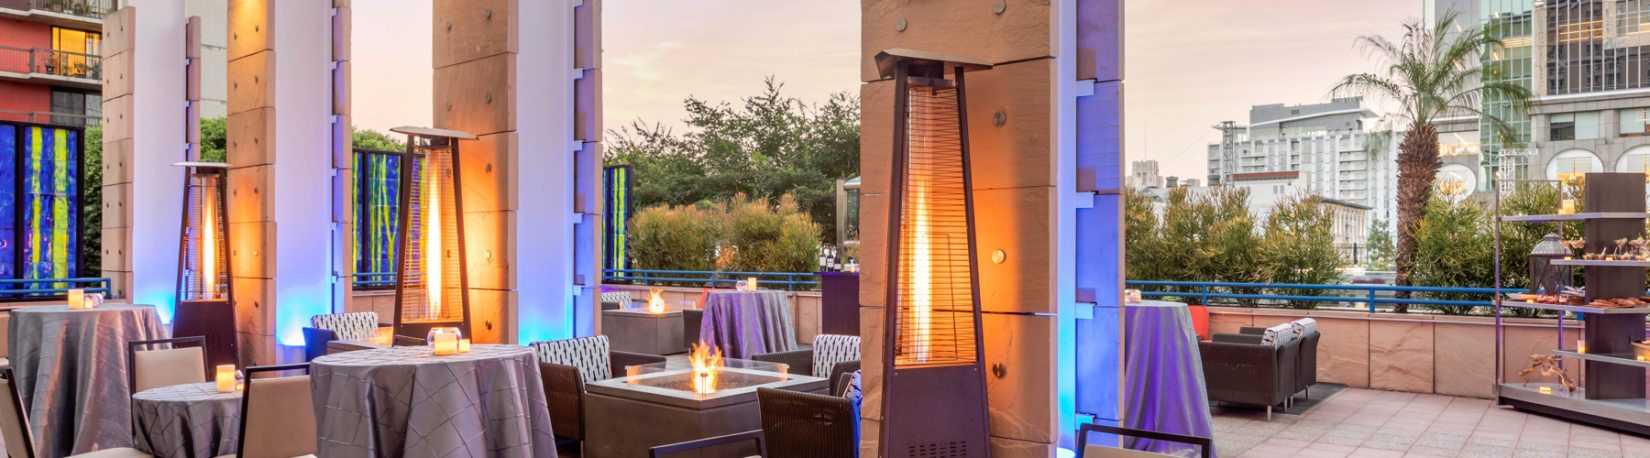 Rooftop Restaurant with Tall Patio Heaters and Fire Pits